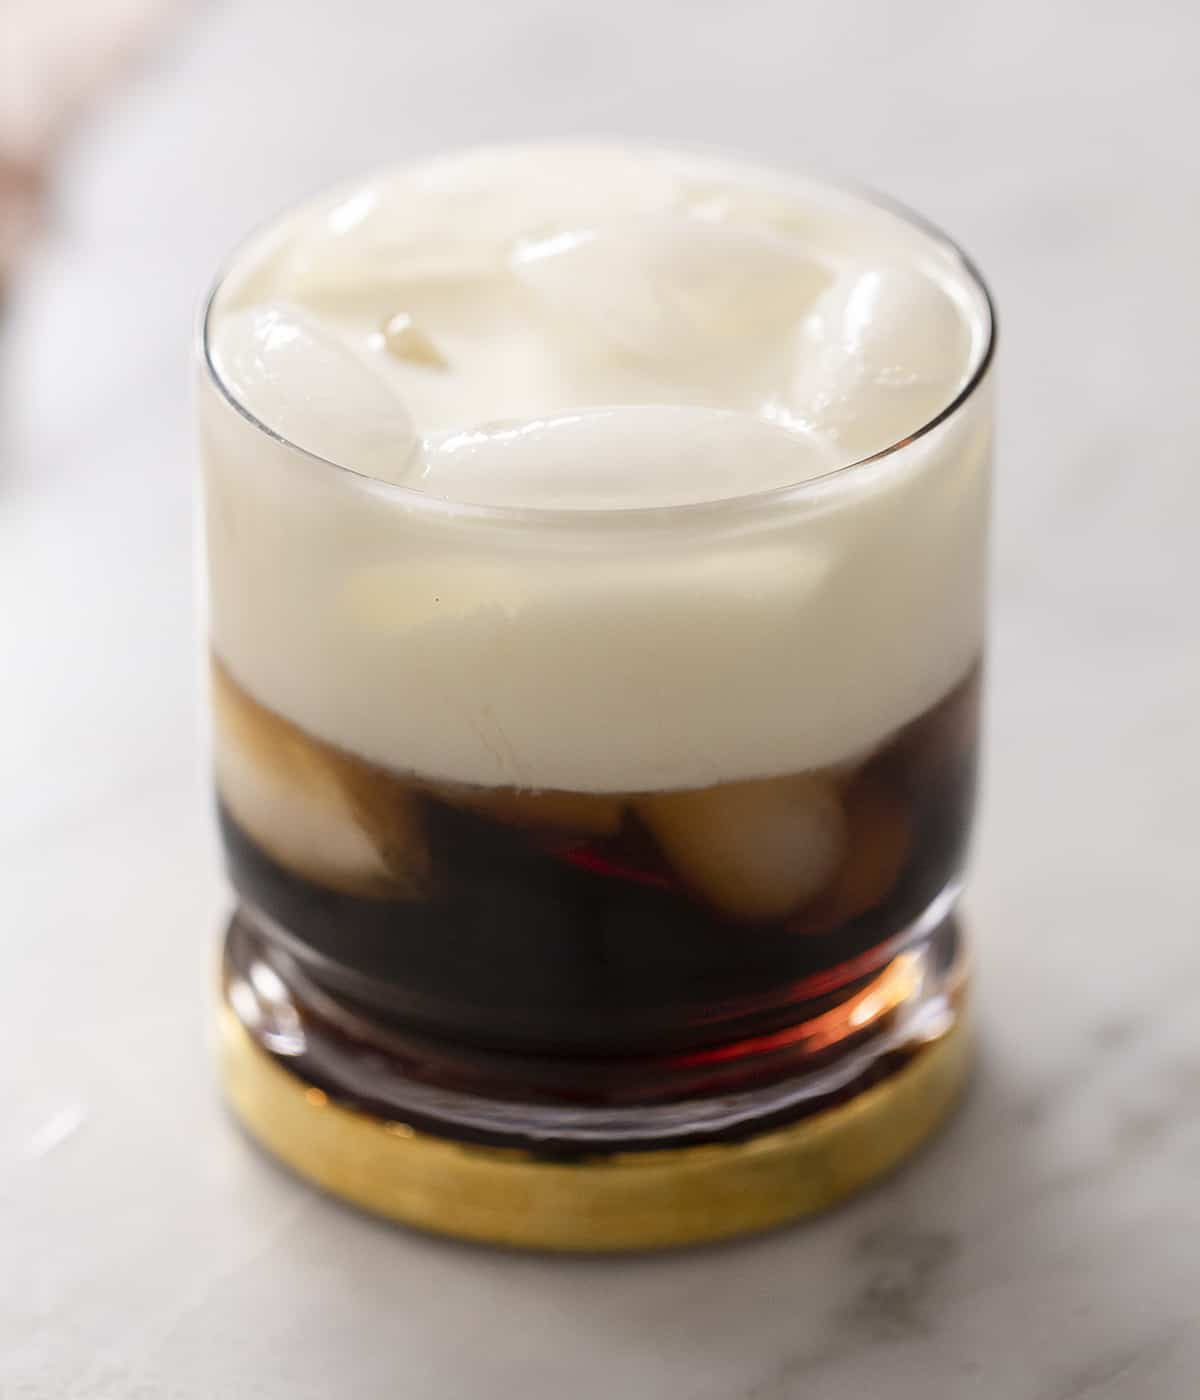 A close up of a White Russian cocktail in a glass filled with ice